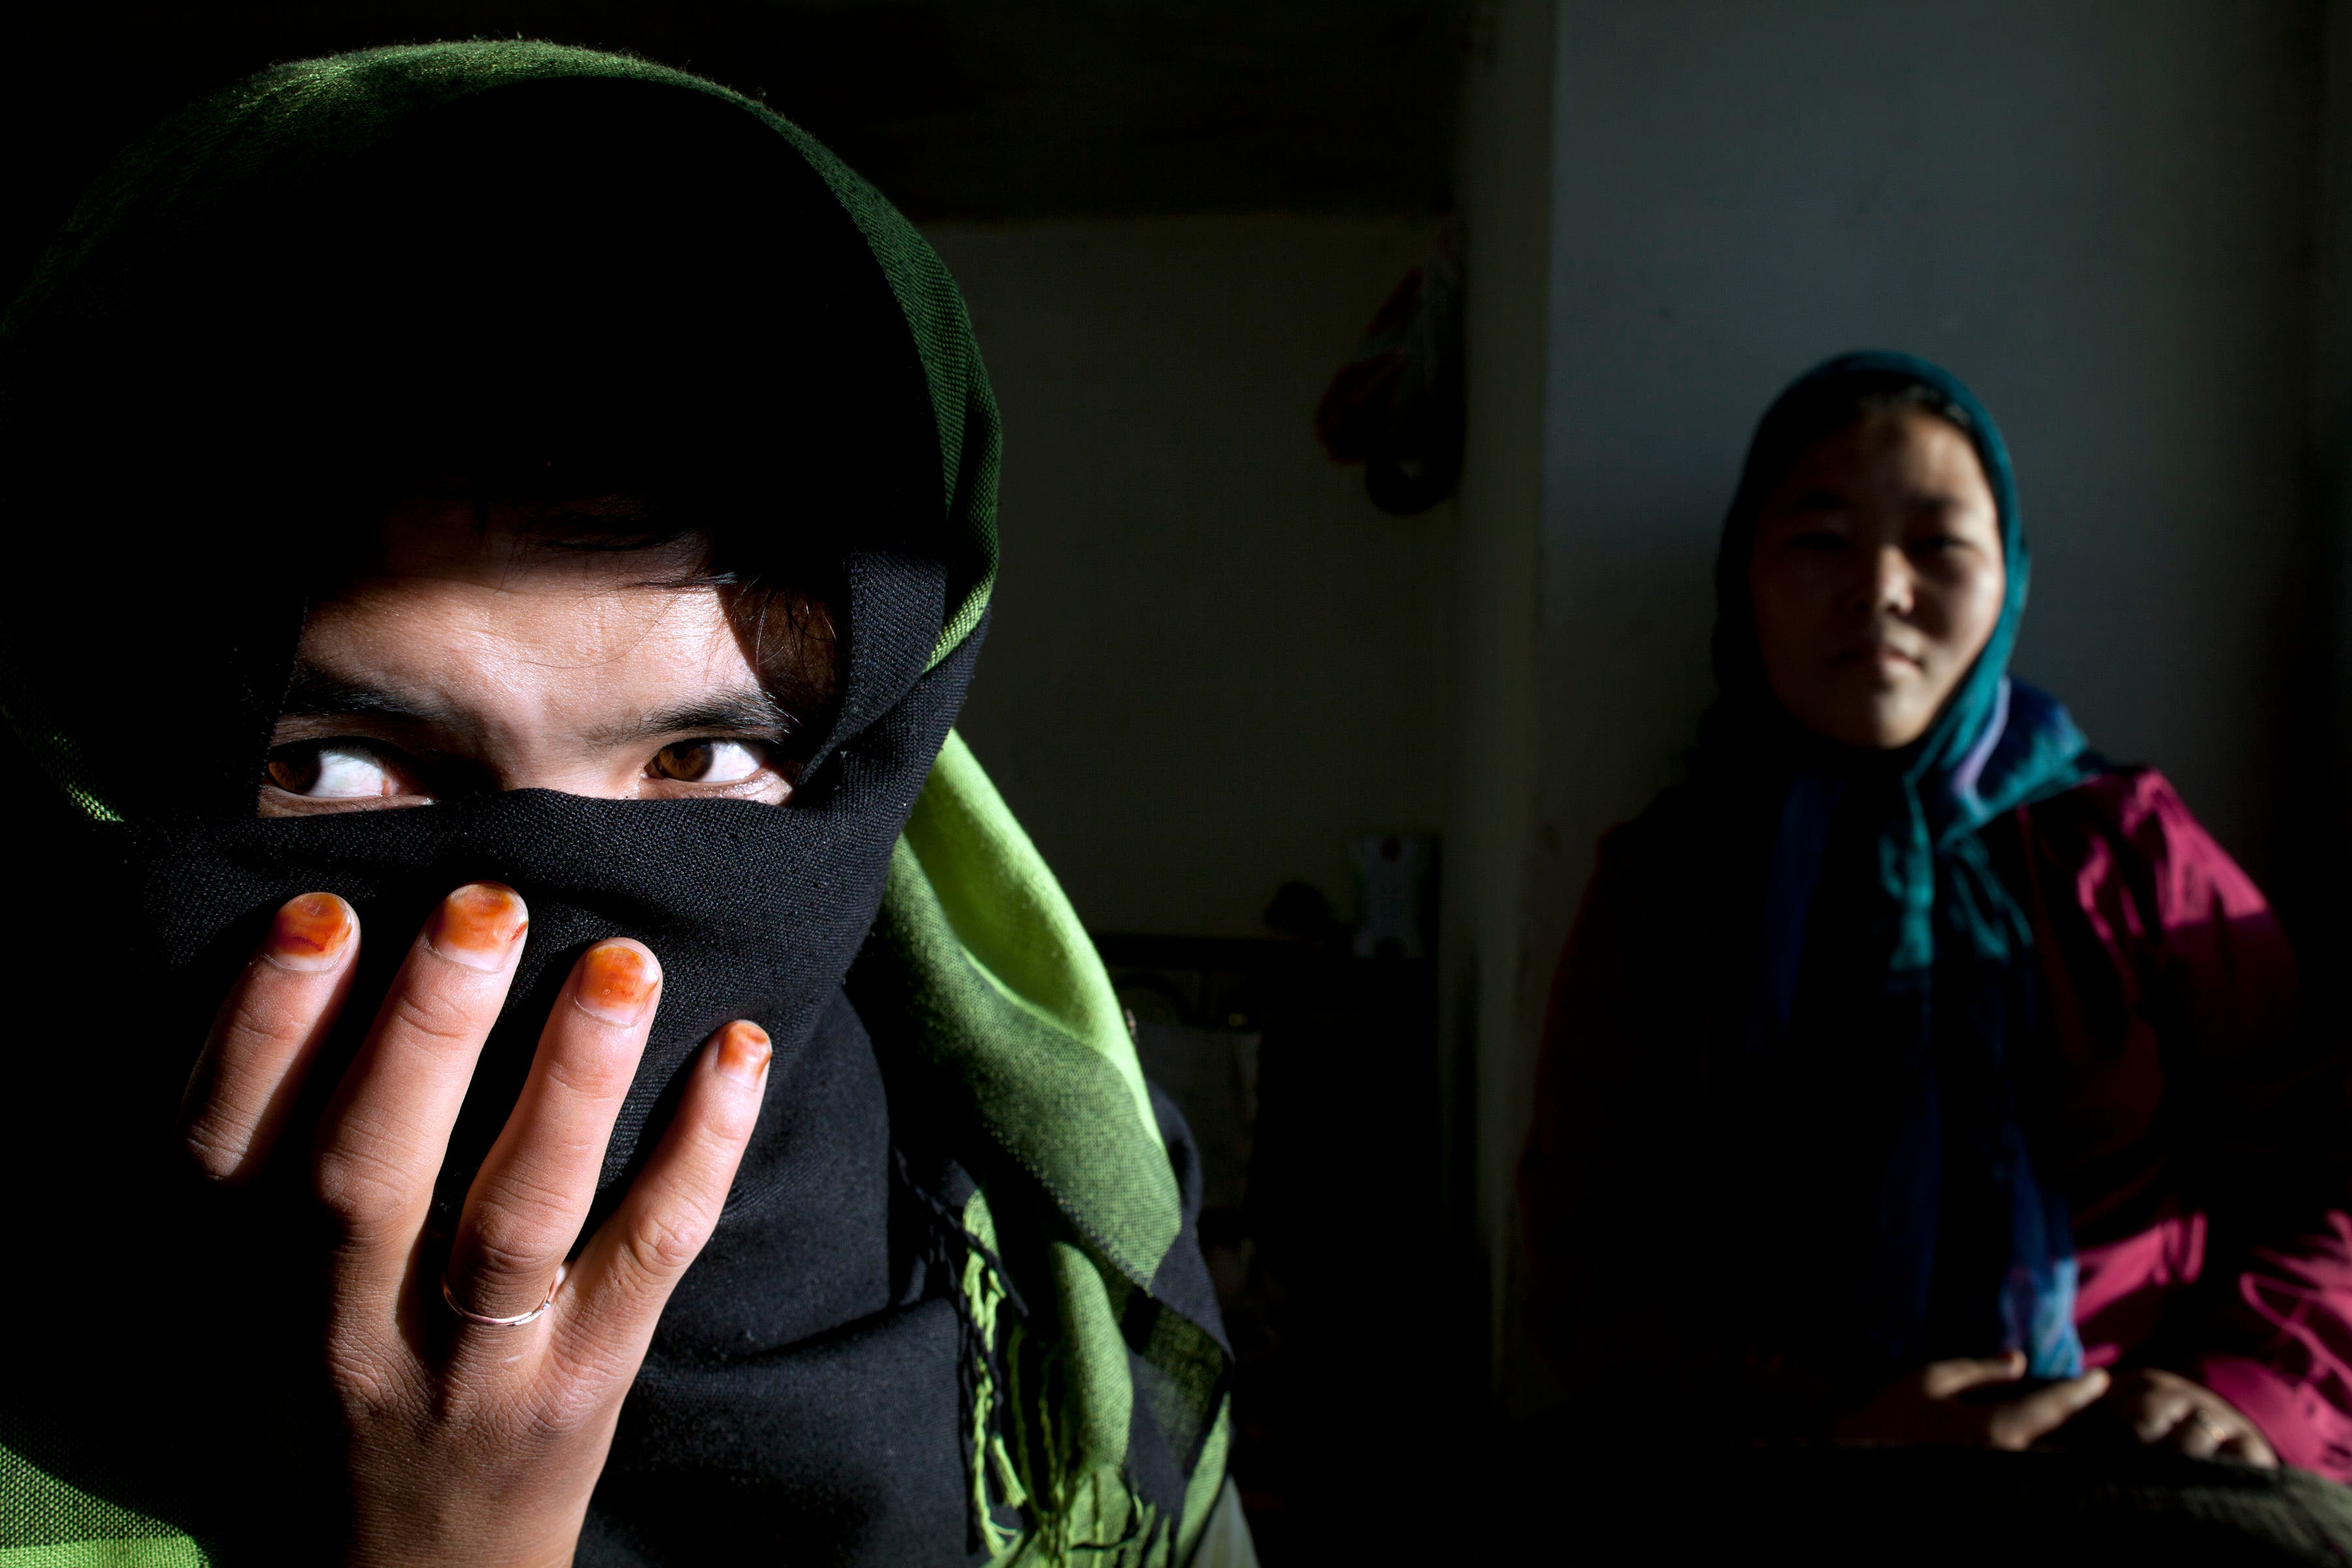 Women of Afghanistan need more power and respect.